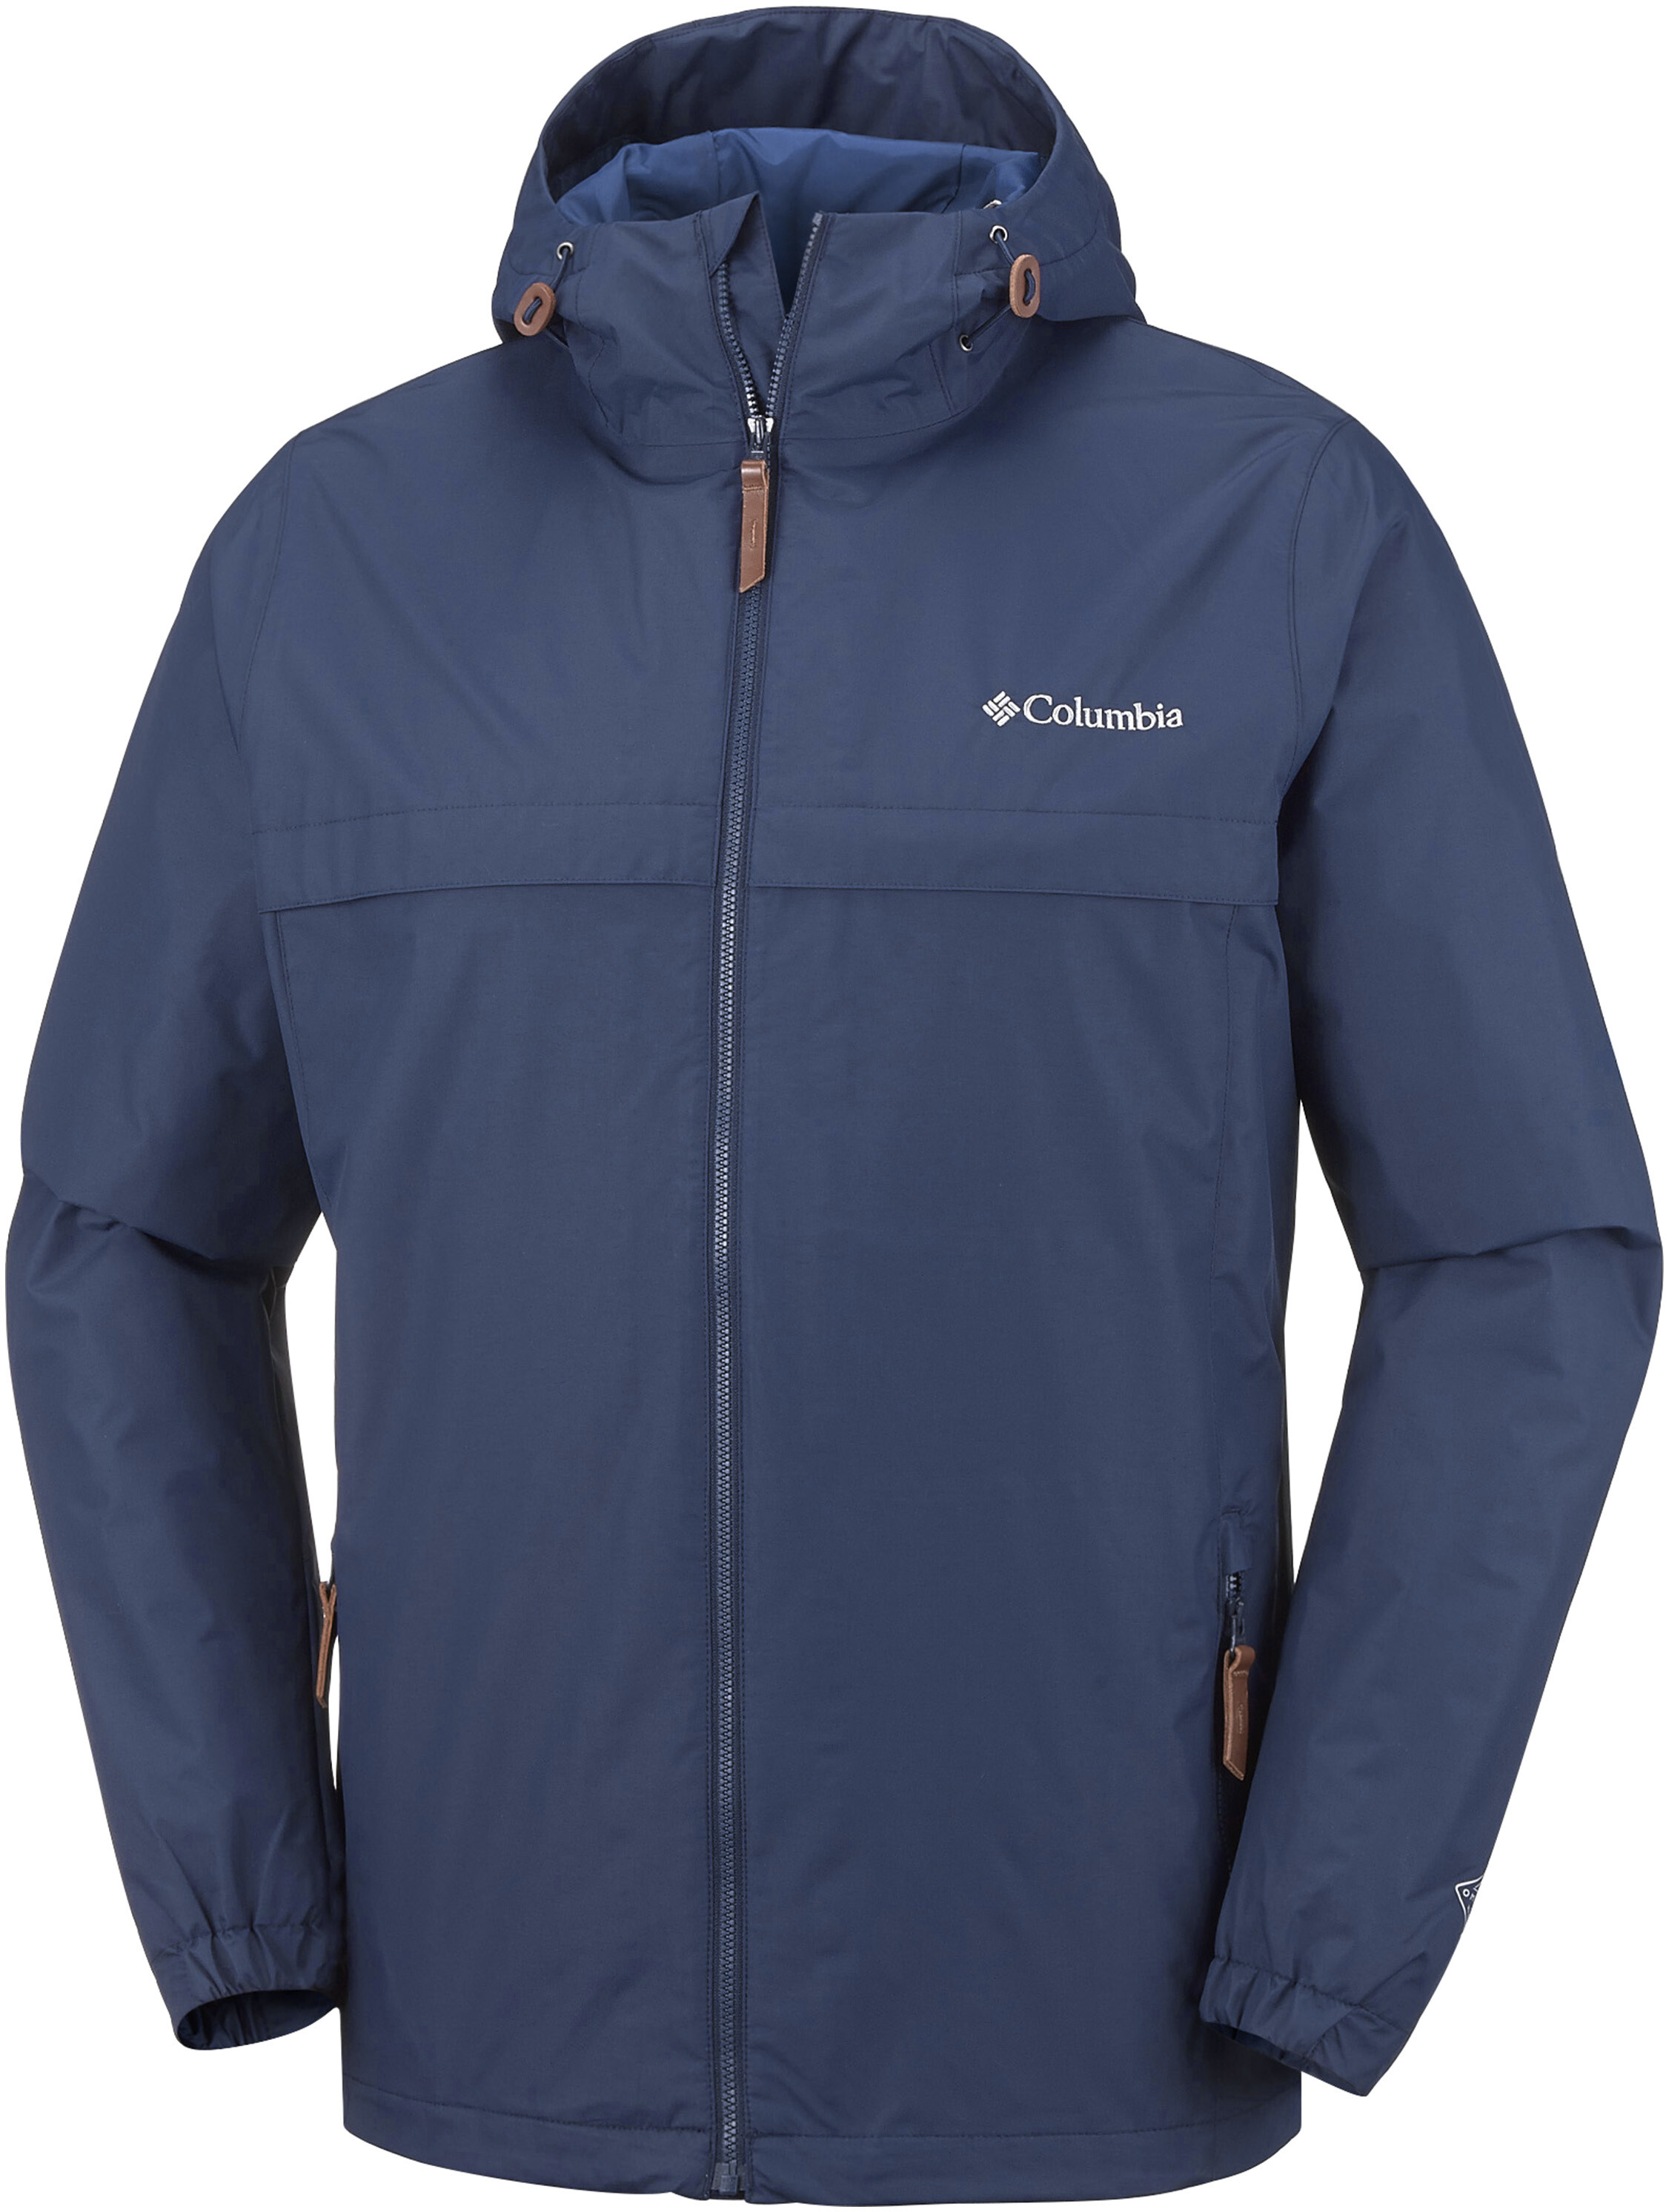 5a8f038f04 Columbia Jones Ridge Jacket Herren collegiate navy | campz.de